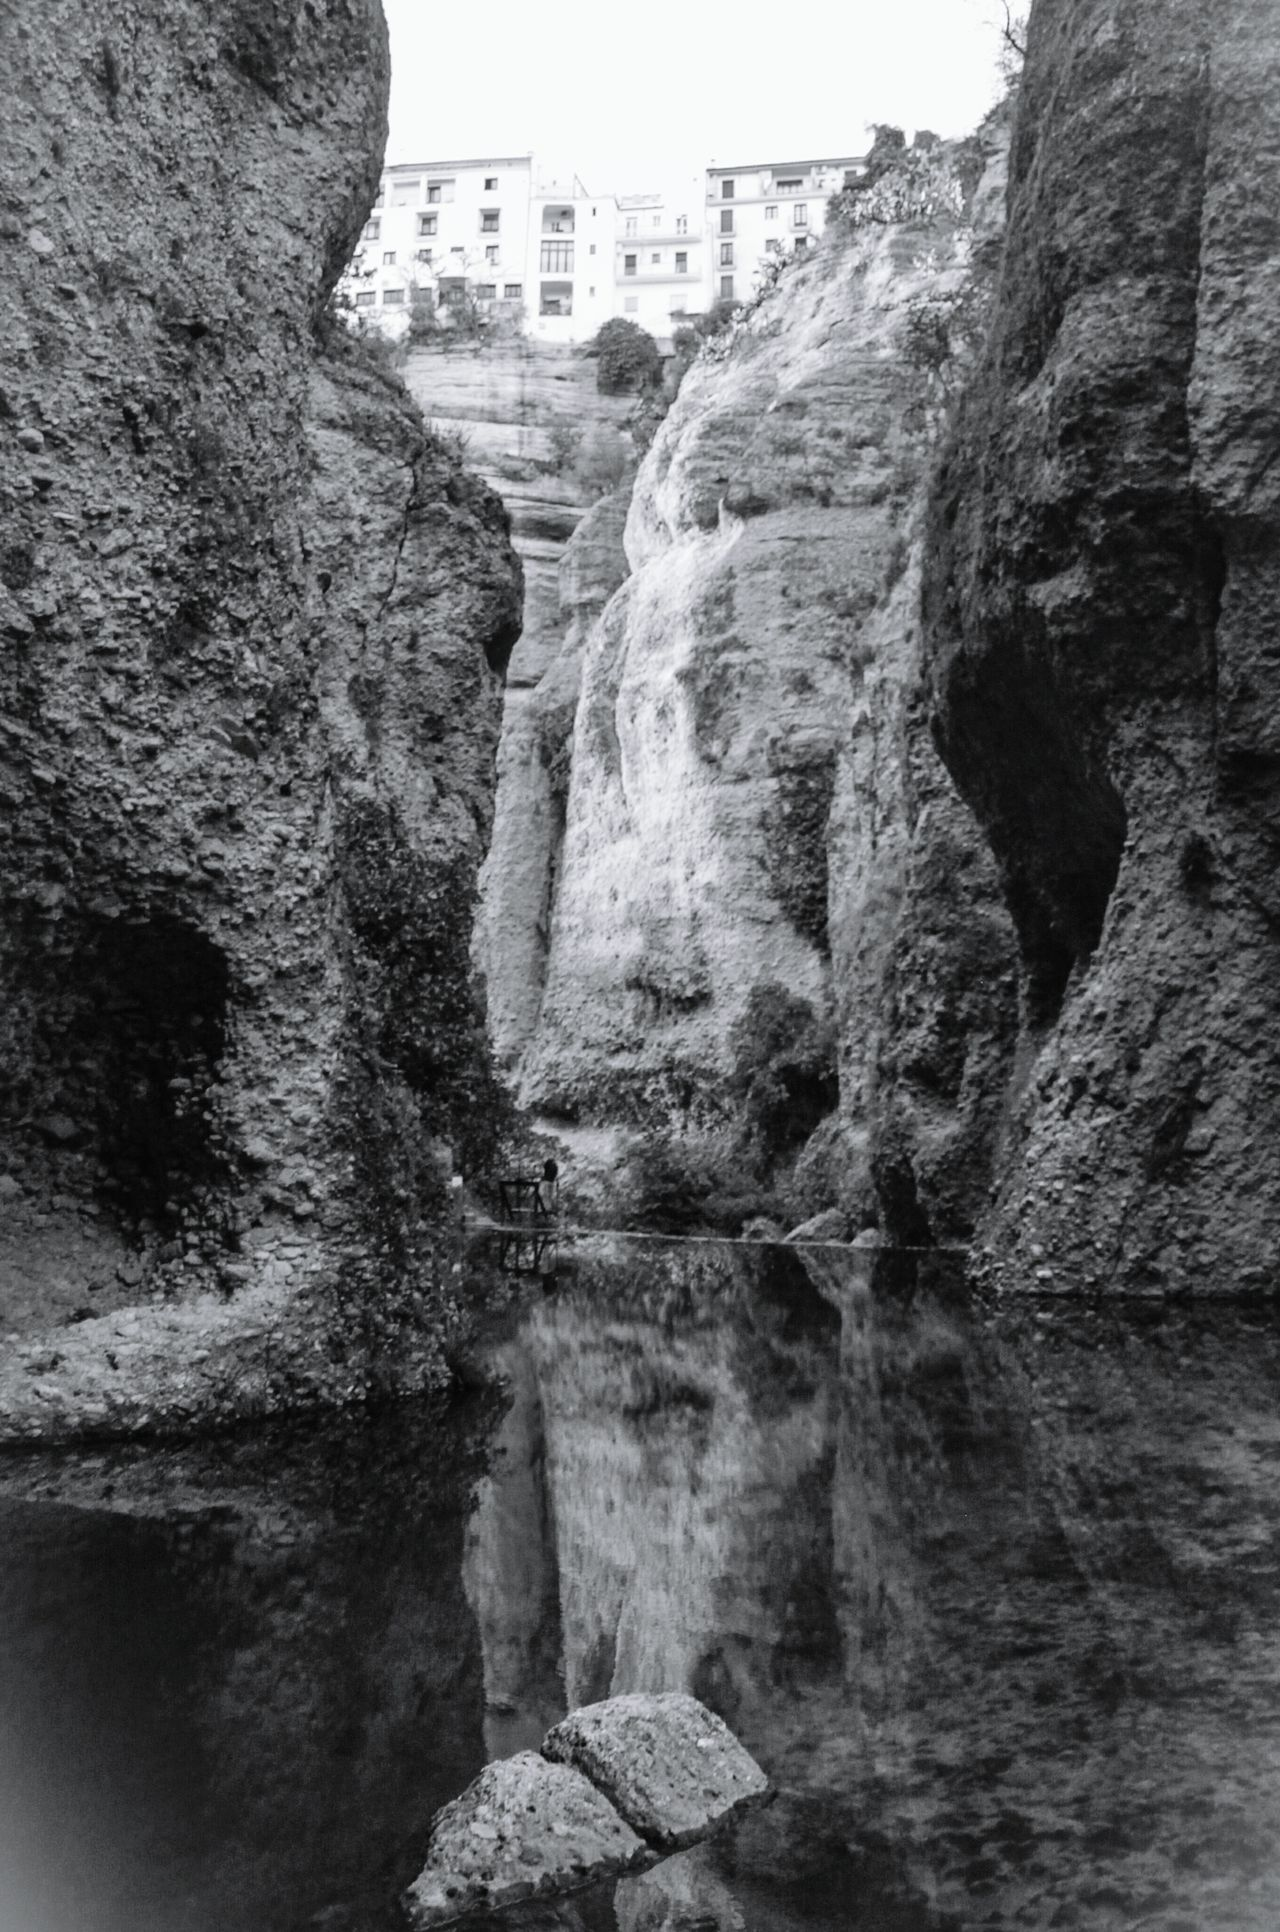 Outdoors Day Check This Out EyeEm Gallery Cliff Ronda Spain Ronda, Malaga Ronda Evening Light Travel Reflection In The Water Reflection Photography Reflections On The Water Blackandwhite Black And White Black & White Bnw EyeEm Best Shots Nopeople Rock Formation Rocks And Water